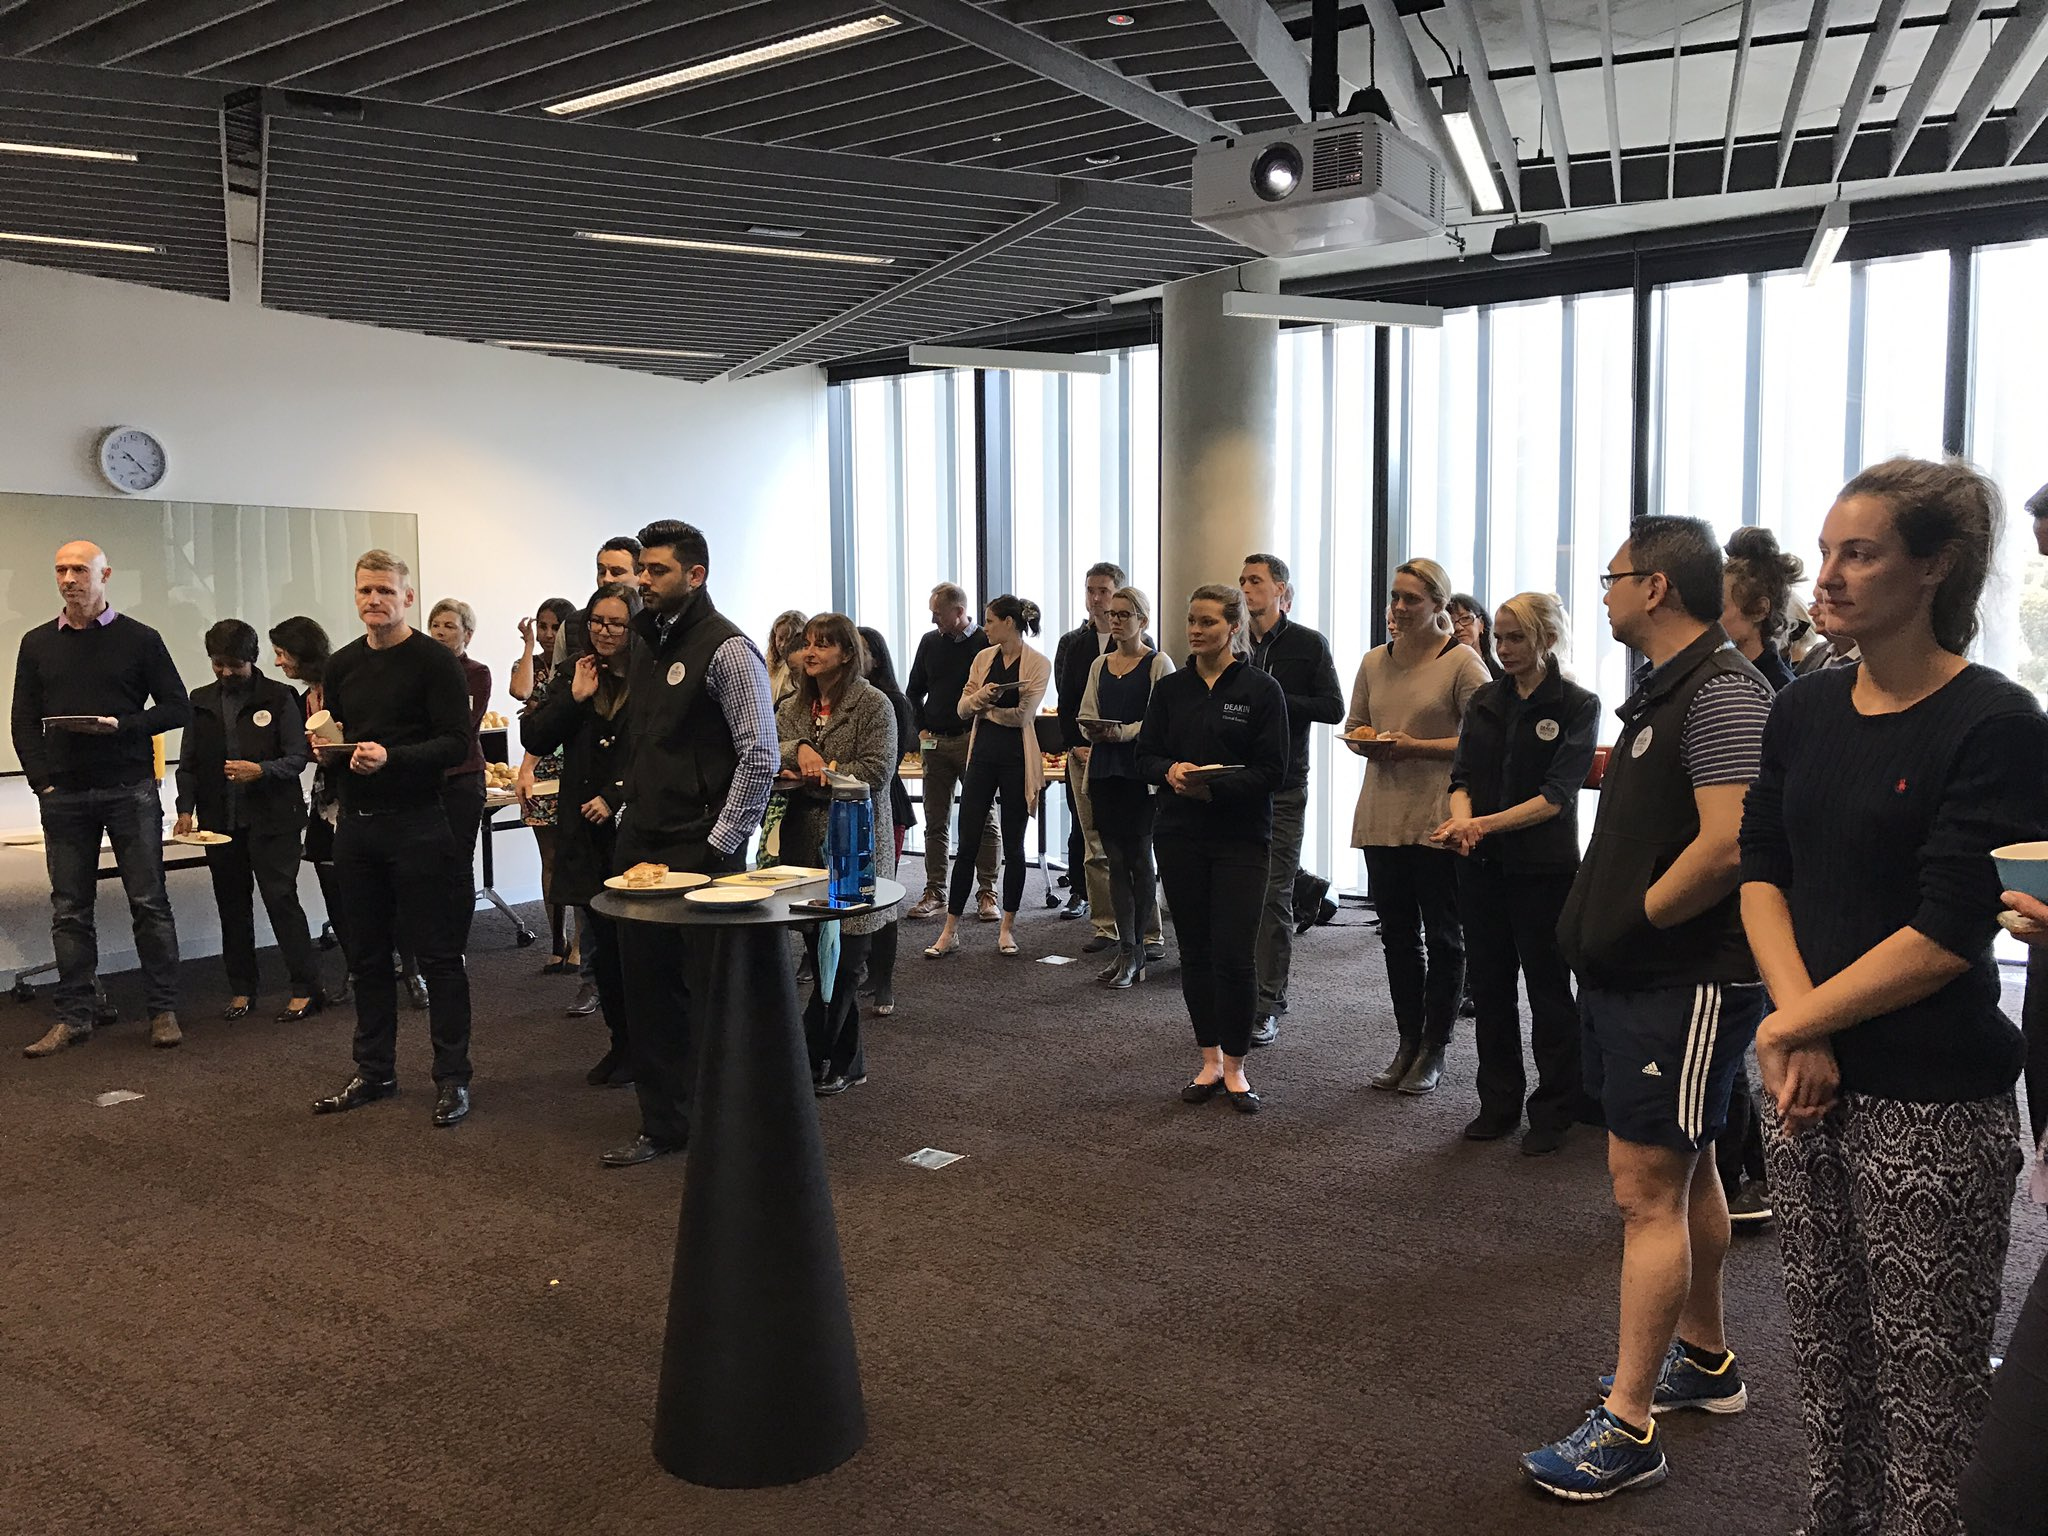 Great to see so many @Deakin staff members showing their support for #DeakinWISE Week this morning over morning tea! #WomenInSport https://t.co/wwvJ4K1MYn